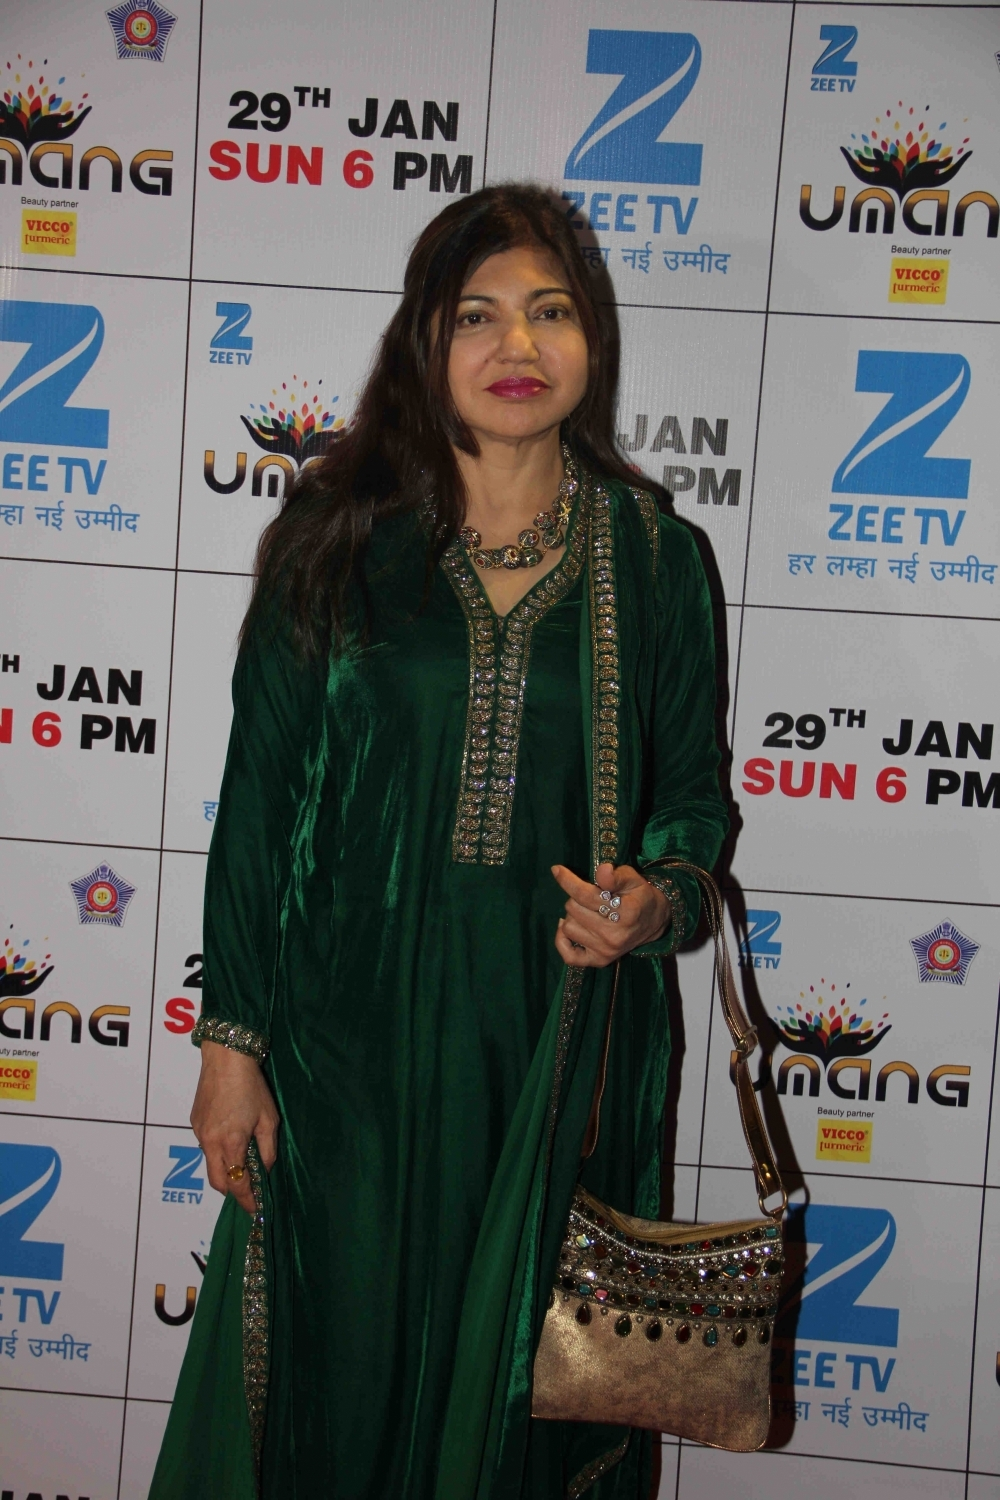 Mumbai: Singer Alka Yagnik during the Umang Mumbai Police Show 2017 in Mumbai on Jan 22, 2017. (Photo: IANS)